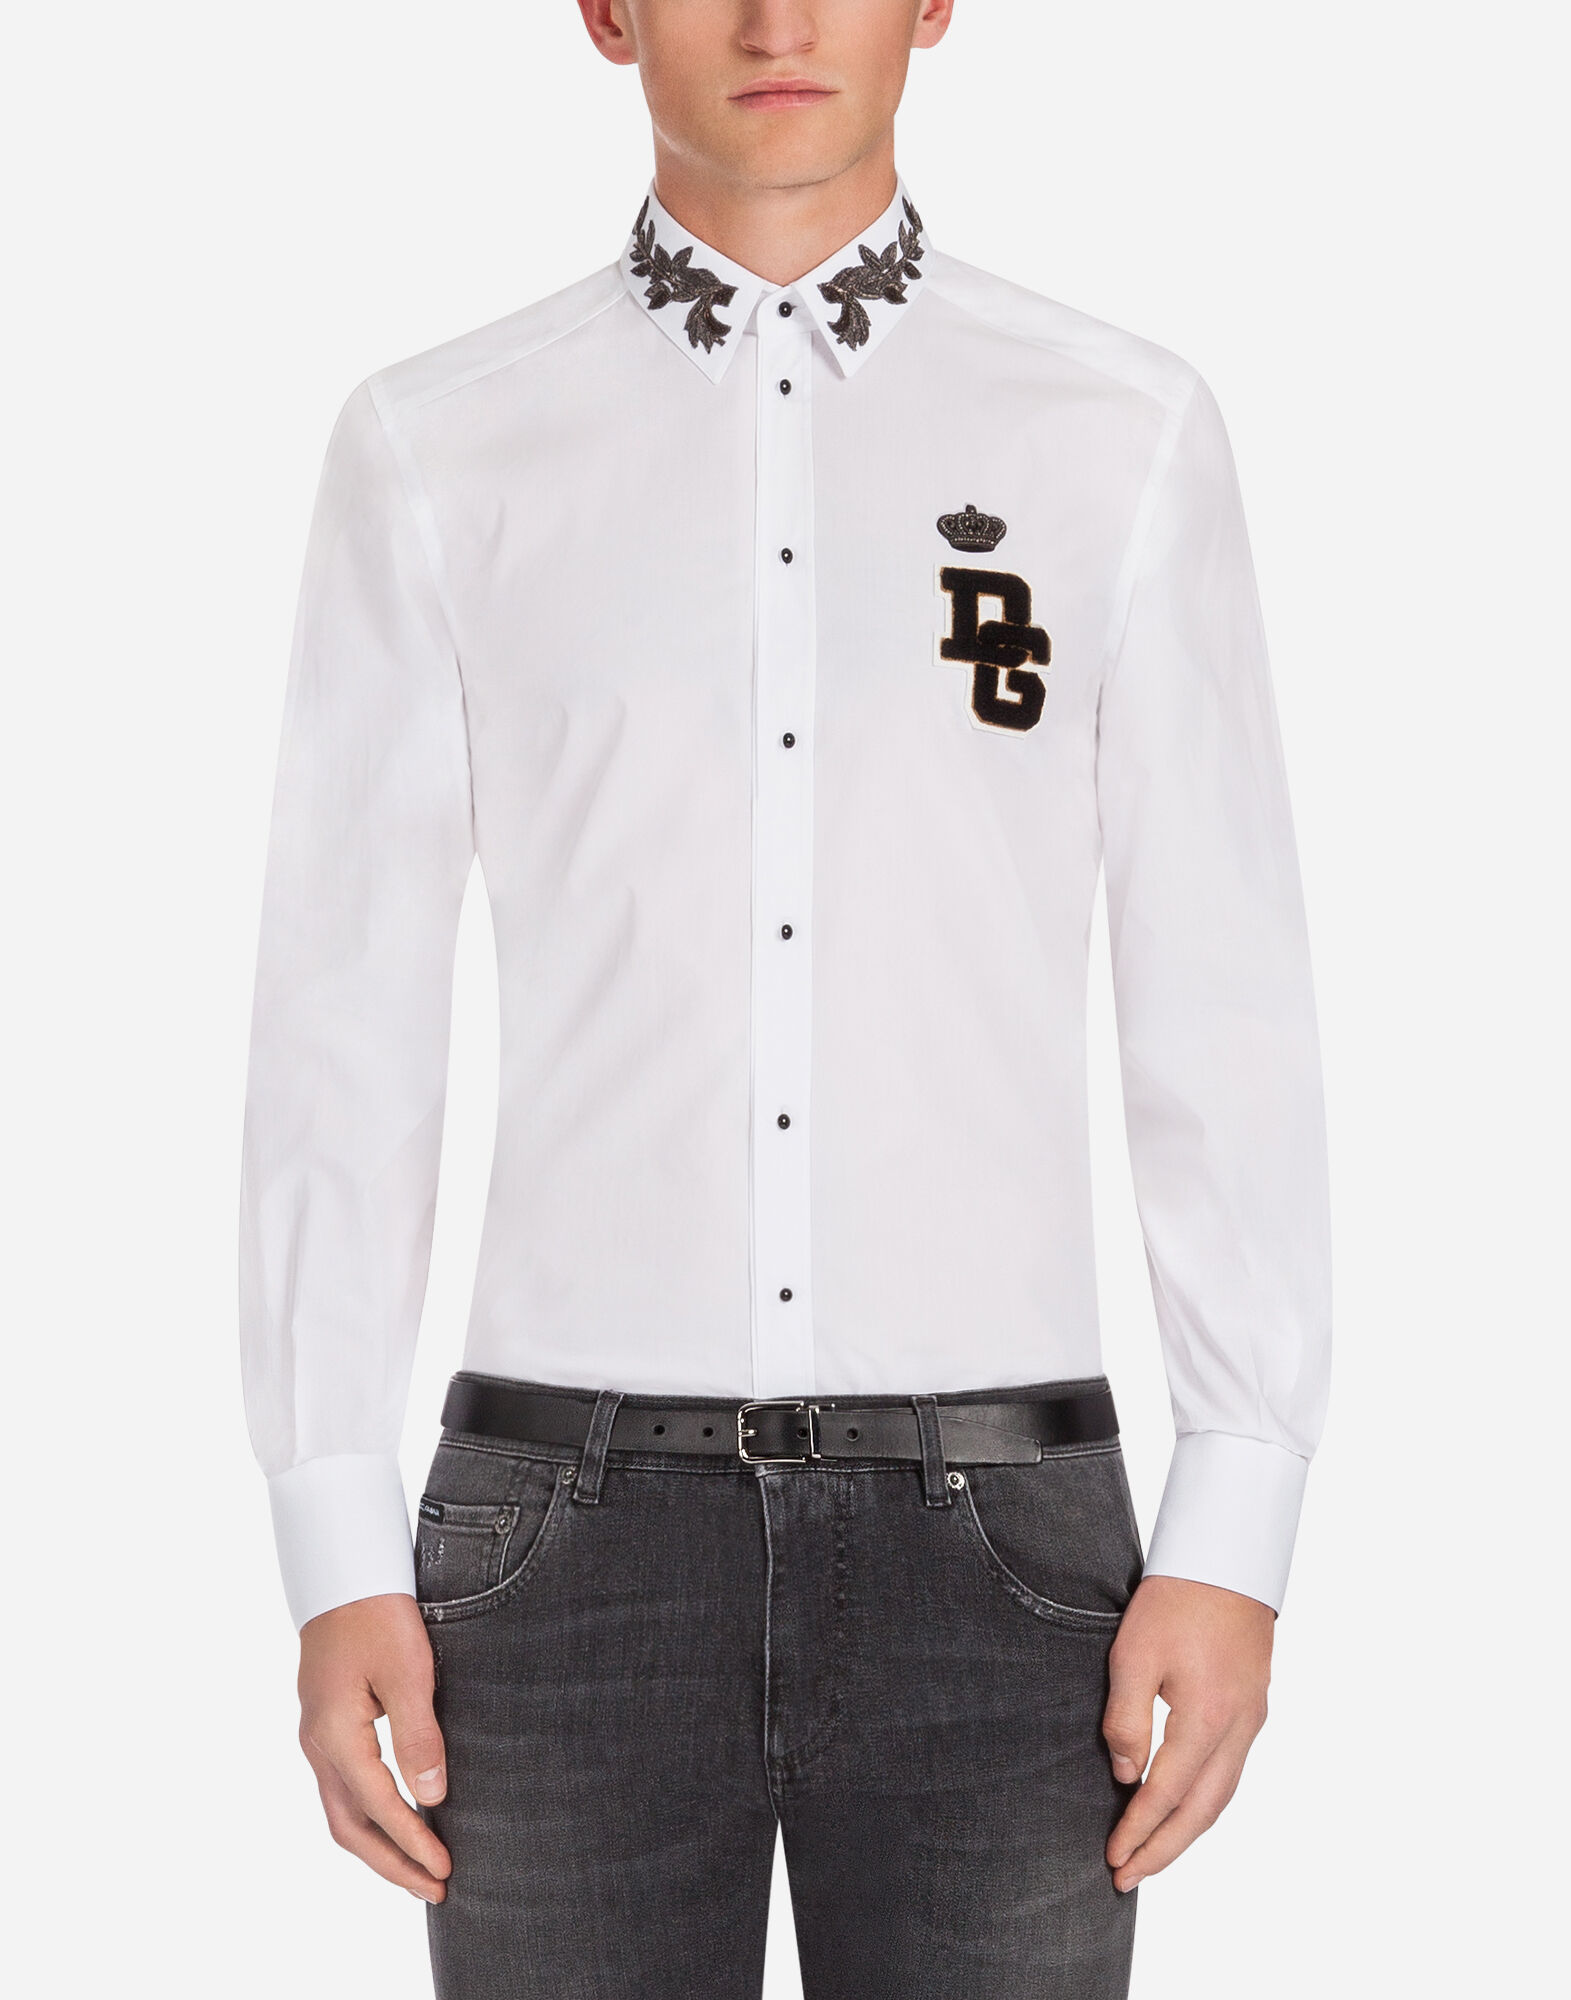 GOLD FIT SHIRT IN EMBROIDERED COTTON from DOLCE & GABBANA